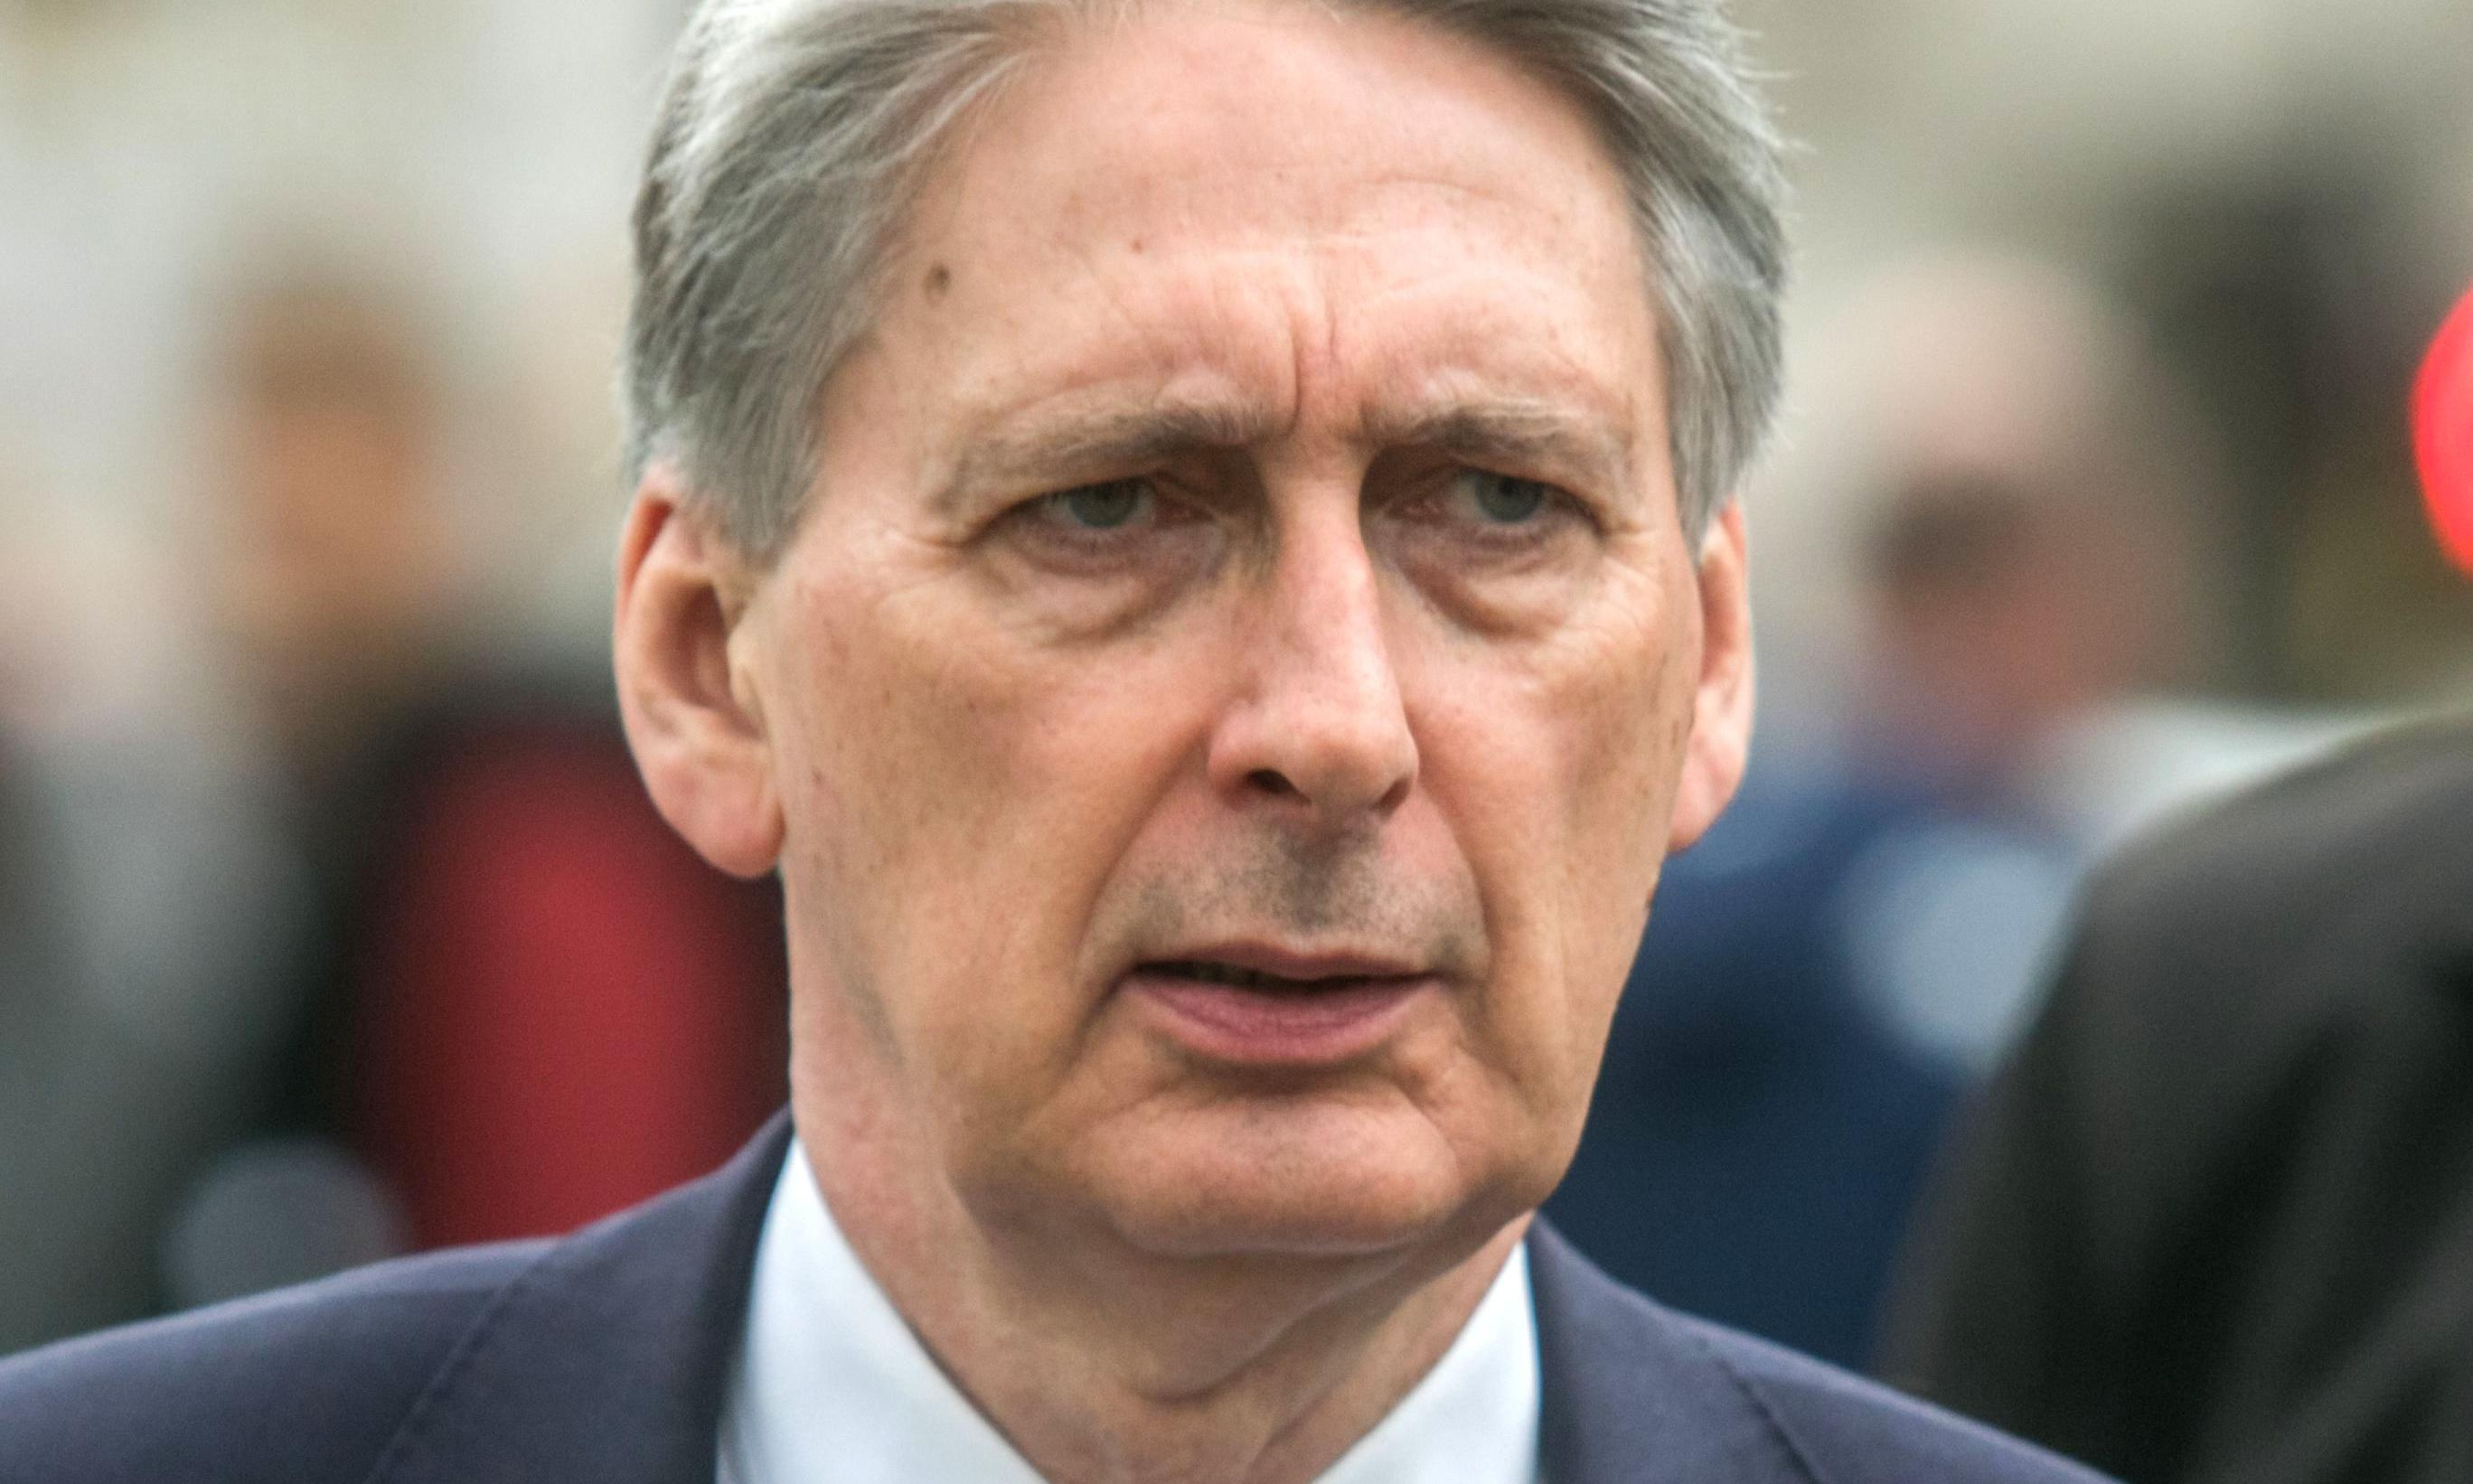 Philip Hammond 'considered quitting over Theresa May spending plans'